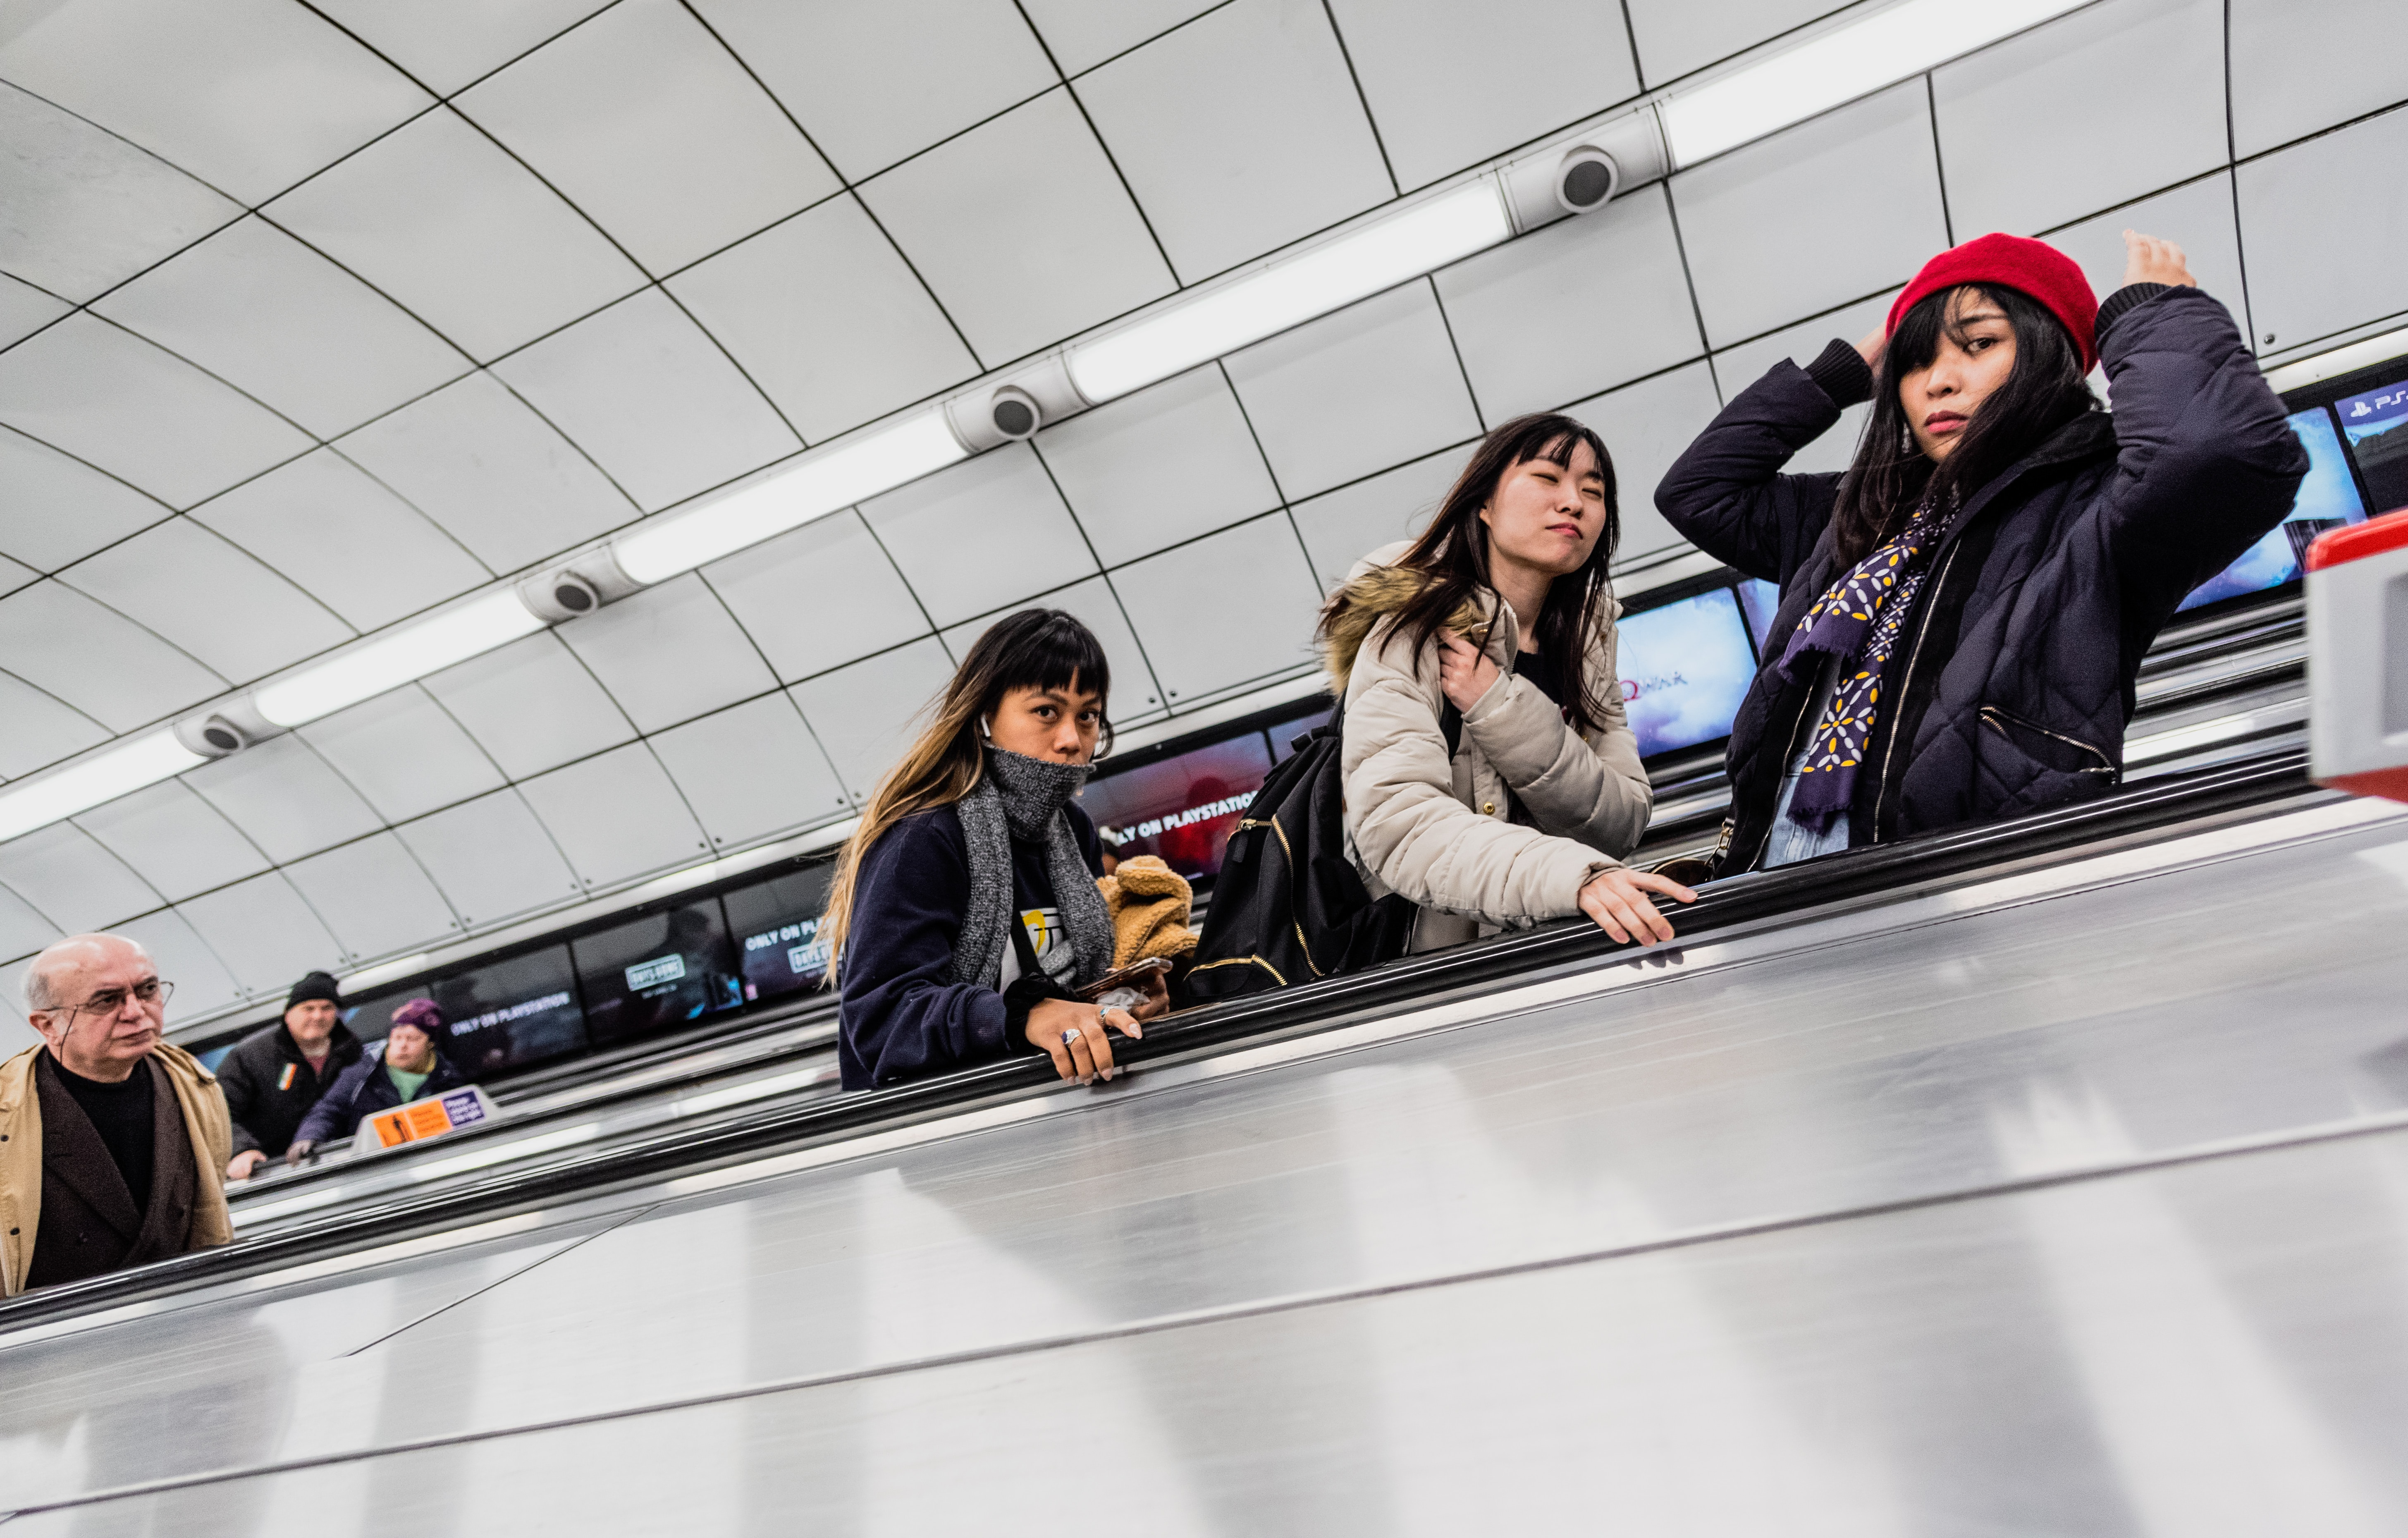 a group of people sitting at a train station